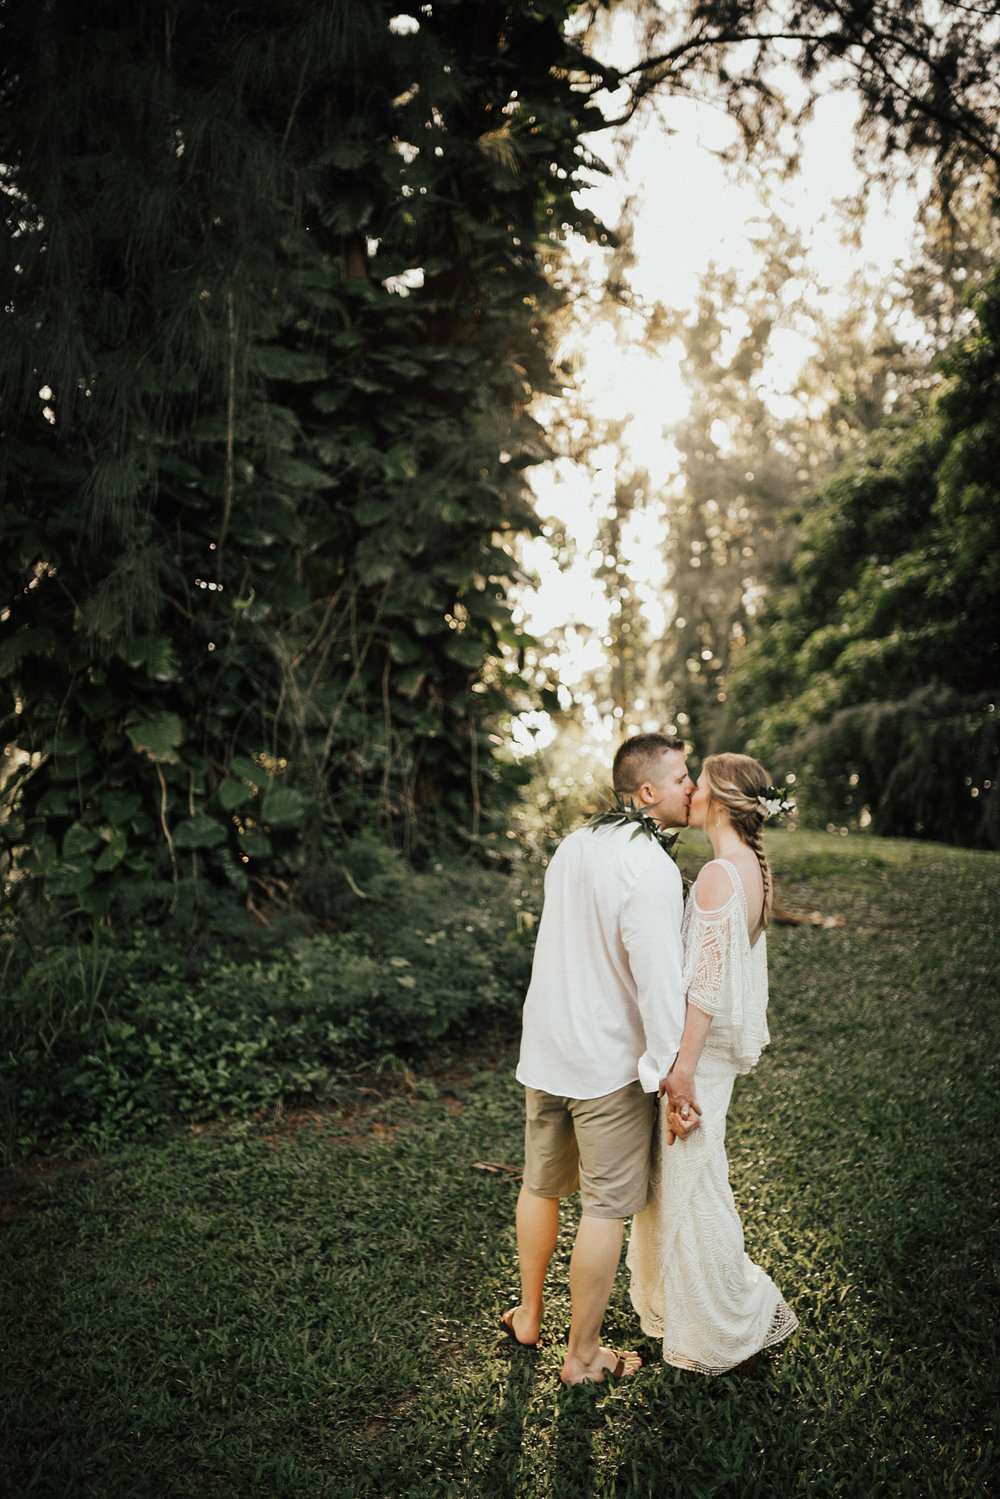 Kauai-elopement-photographer-61.jpg